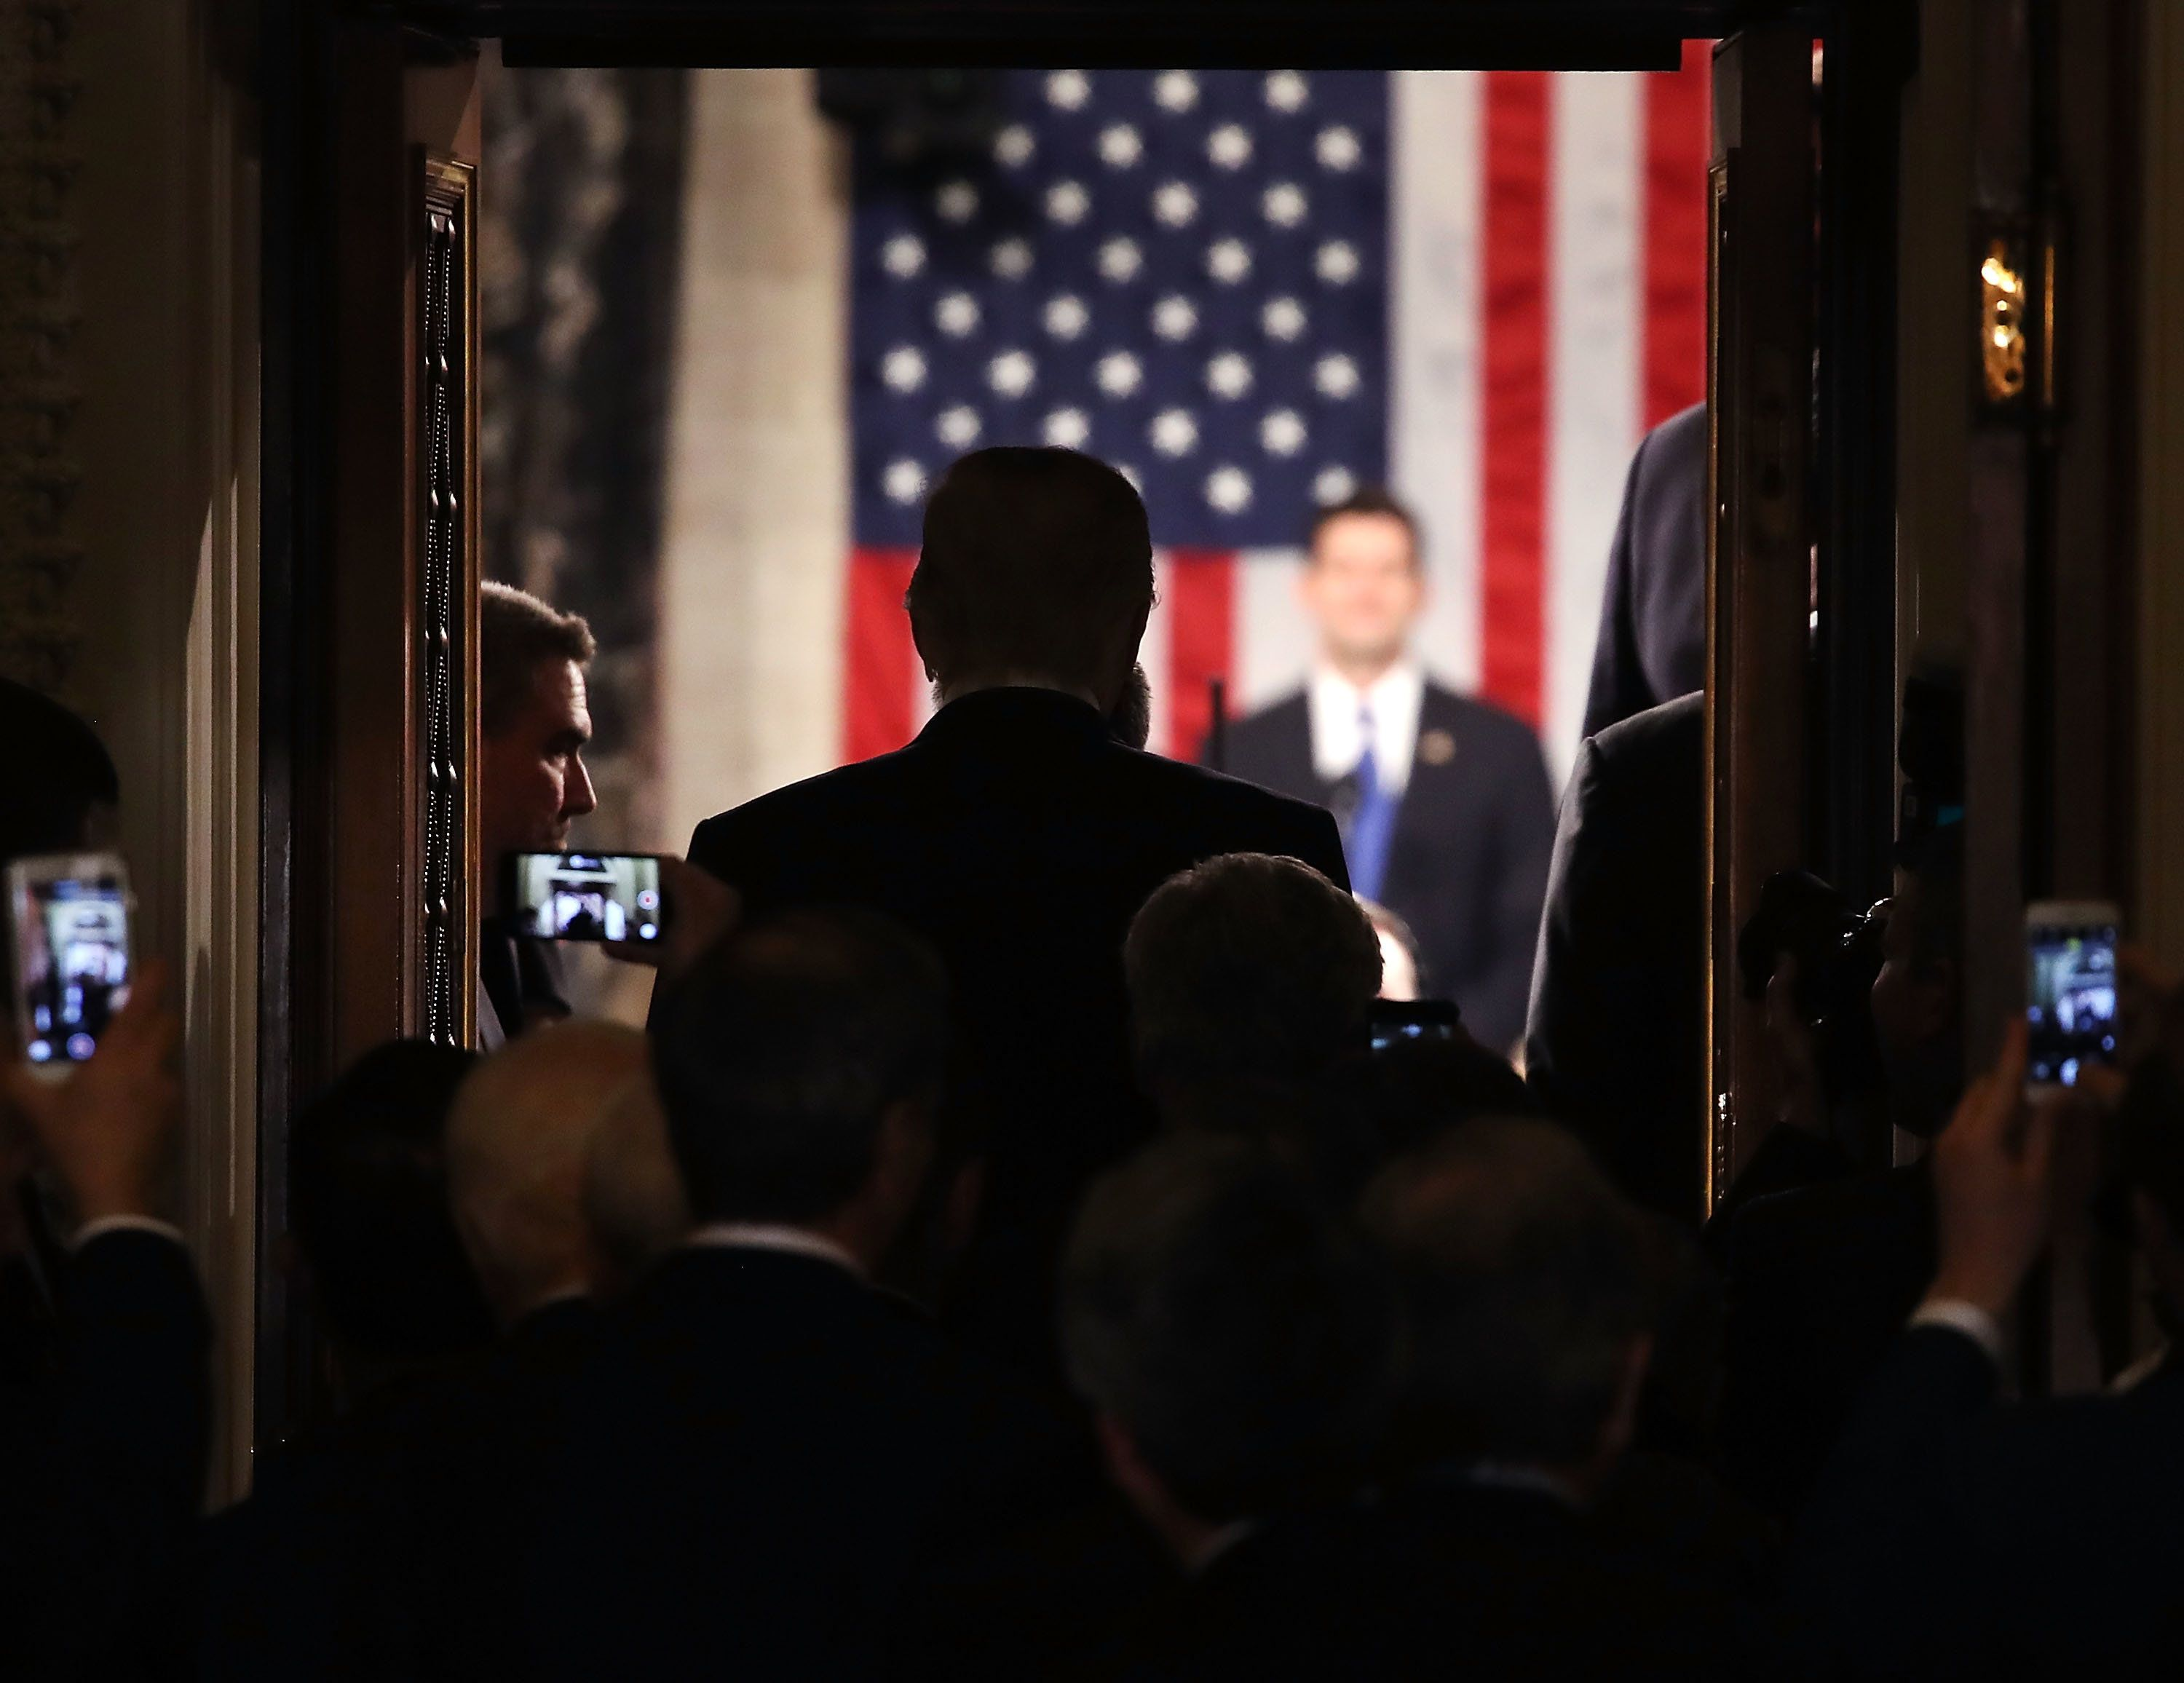 WASHINGTON, DC - FEBRUARY 28: U.S. President Donald Trump stands in the doorway of the House chamber while being introduced to speak before a joint session of Congress on February 28, 2017 in Washington, DC. Trump's first address to Congress is expected to focus on national security, tax and regulatory reform, the economy, and healthcare.  (Photo by Mark Wilson/Getty Images)